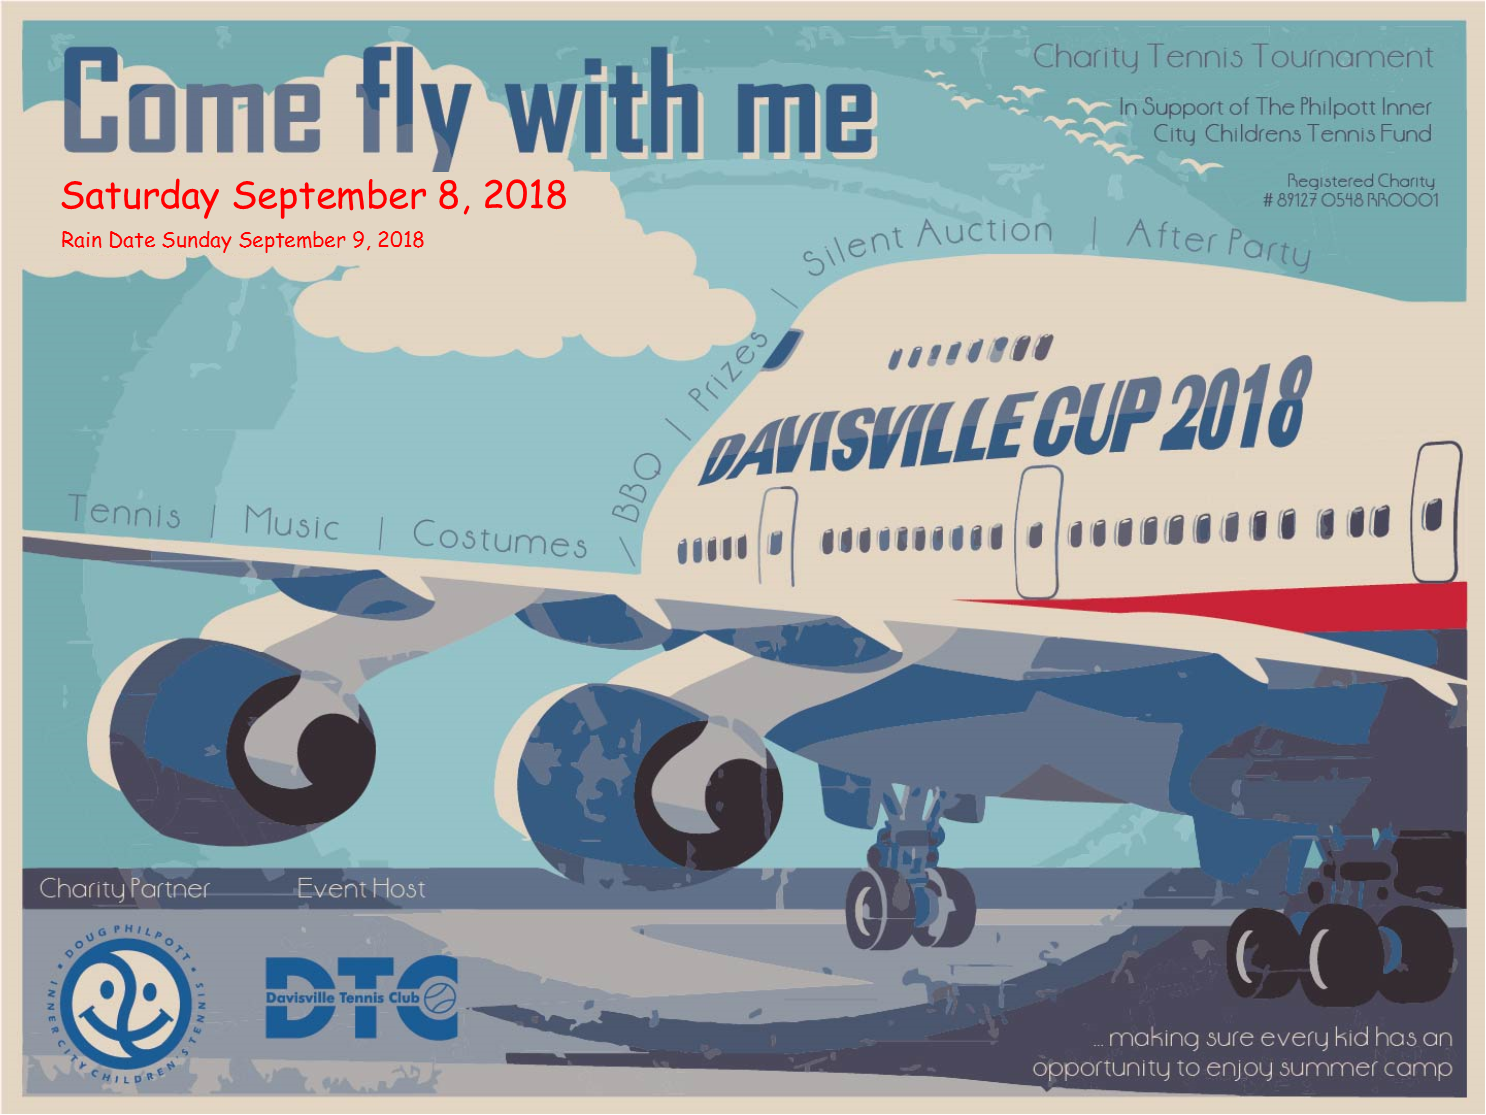 Davisville Cup 2018: Come fly with us!